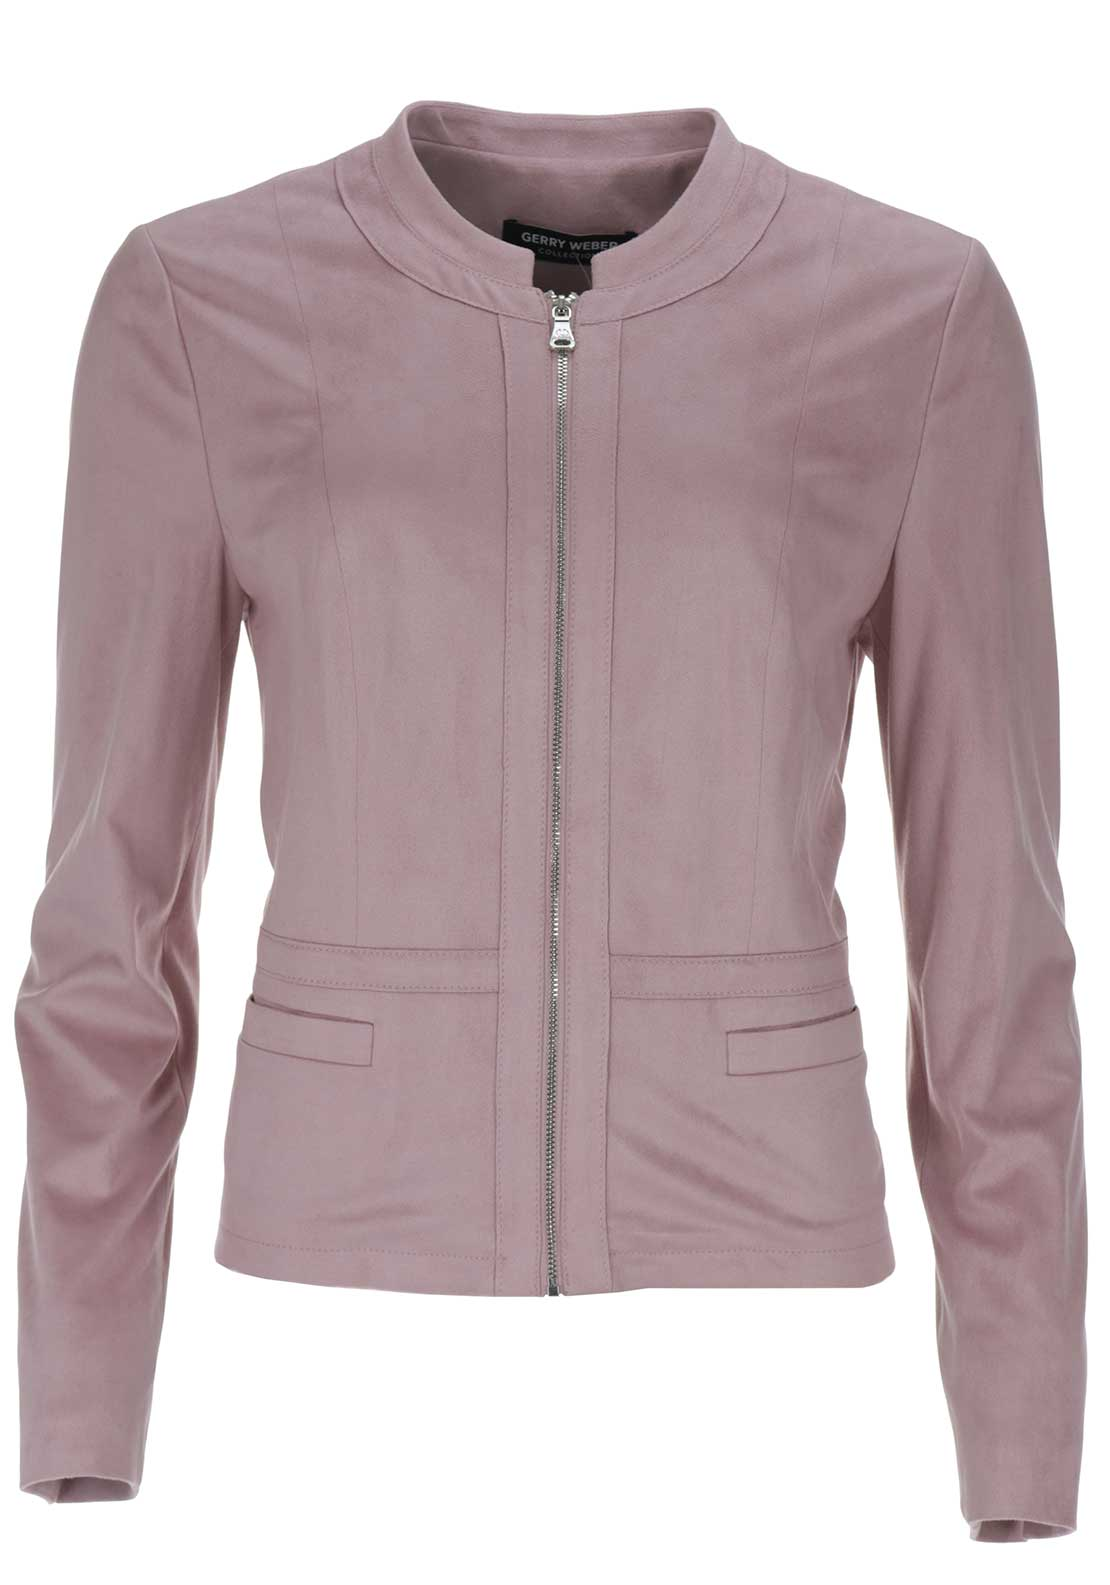 Gerry Weber Faux Suede Bomber Jacket, Pink